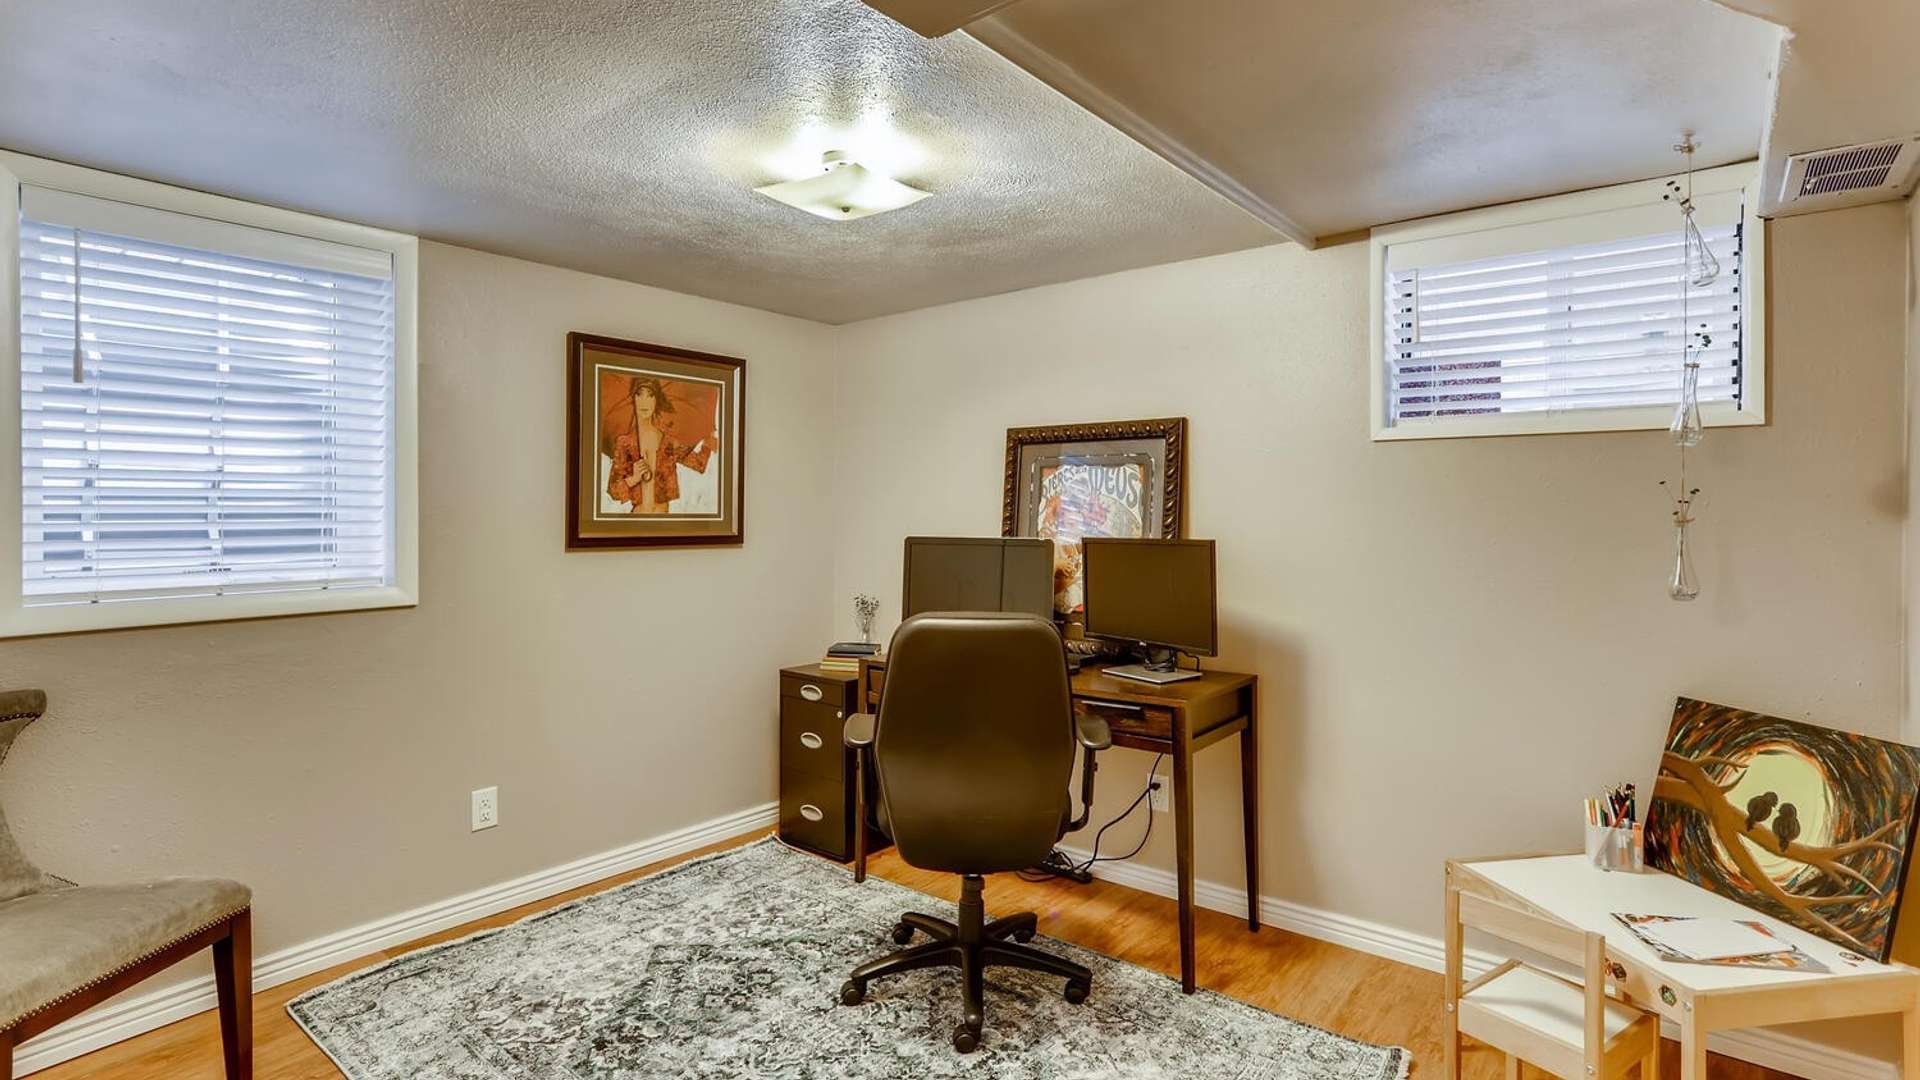 30 of 38. Home Office or 4th Bedroom